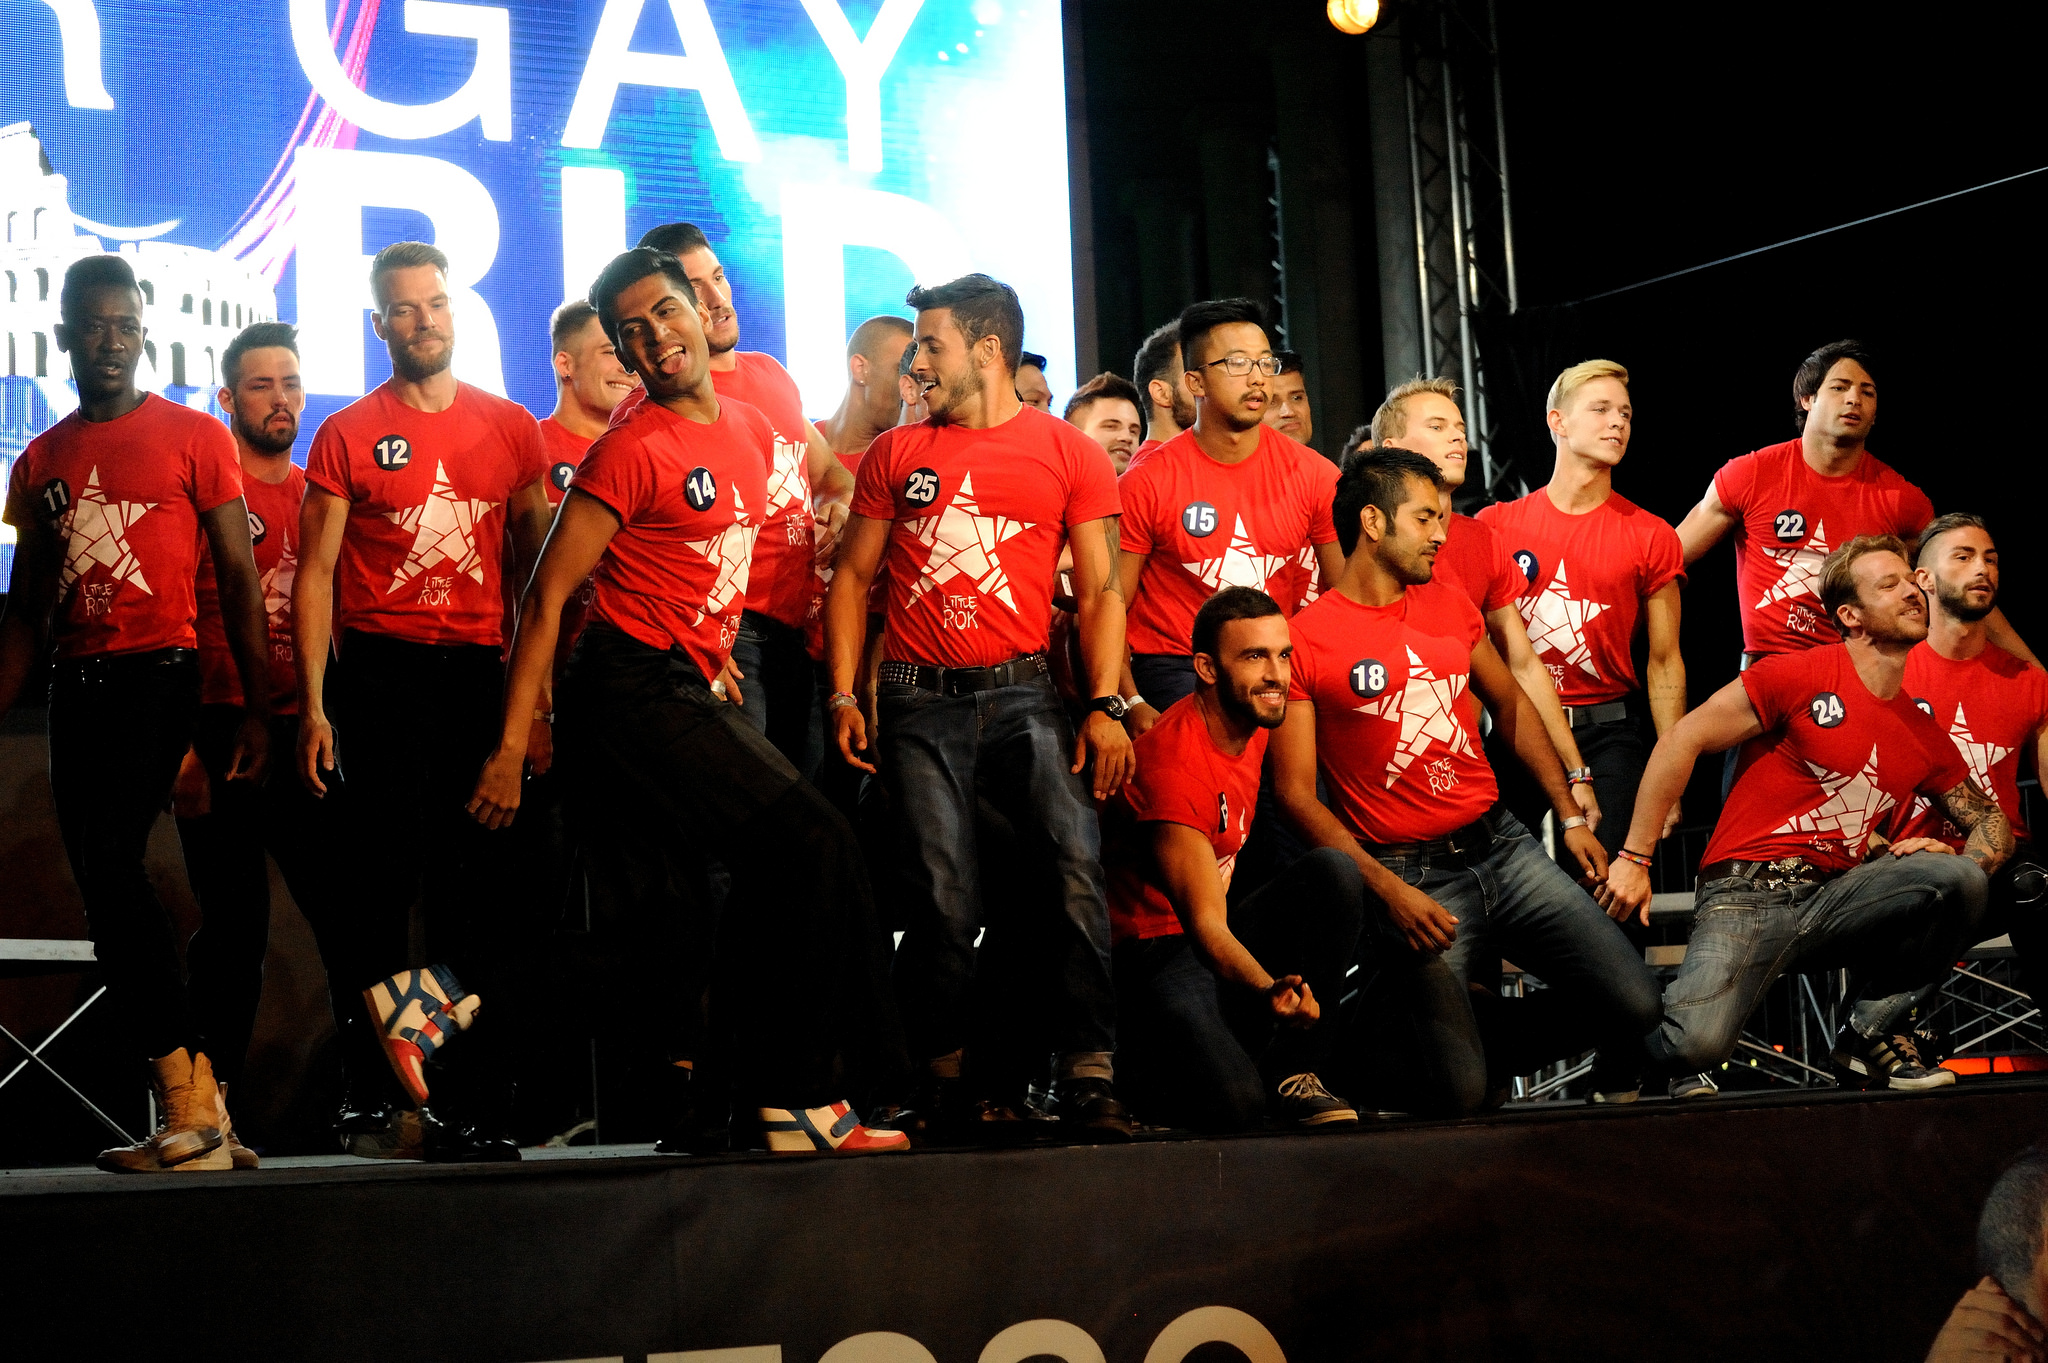 A picture of particiapnts at Mr Gay World 2014 (Photo: Beate A Tecza/MrGayWorld.com)